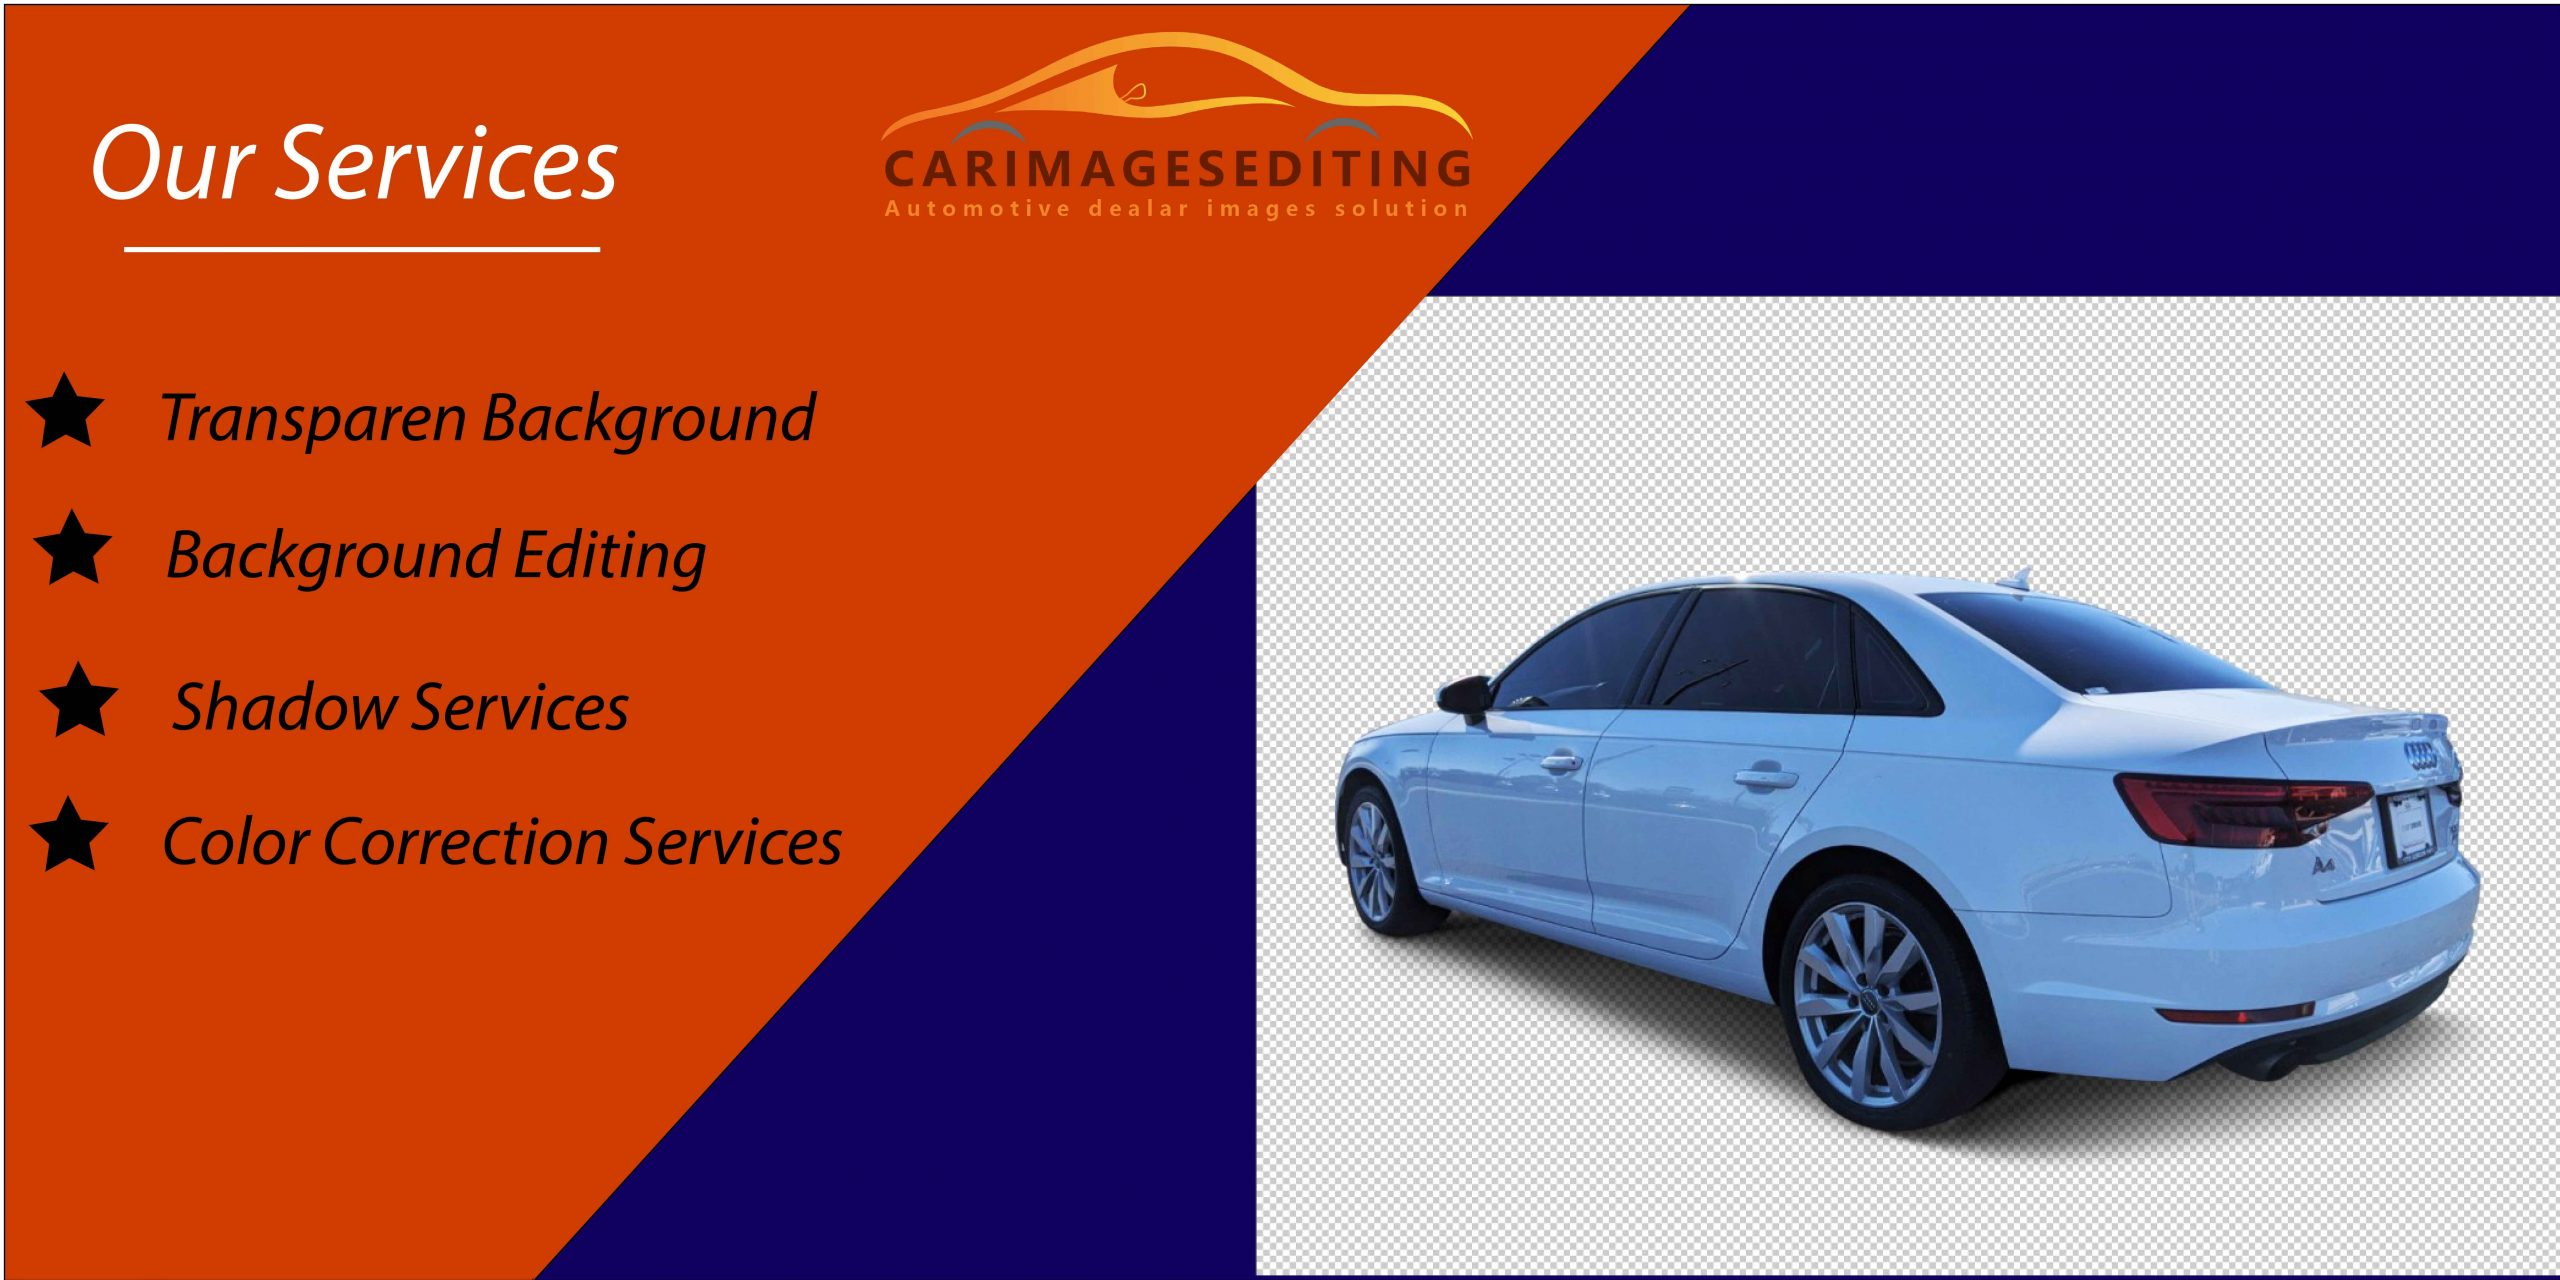 Prioritizing Your Car Transparent Background To Get The Most Out Of Your Business Feature image 2